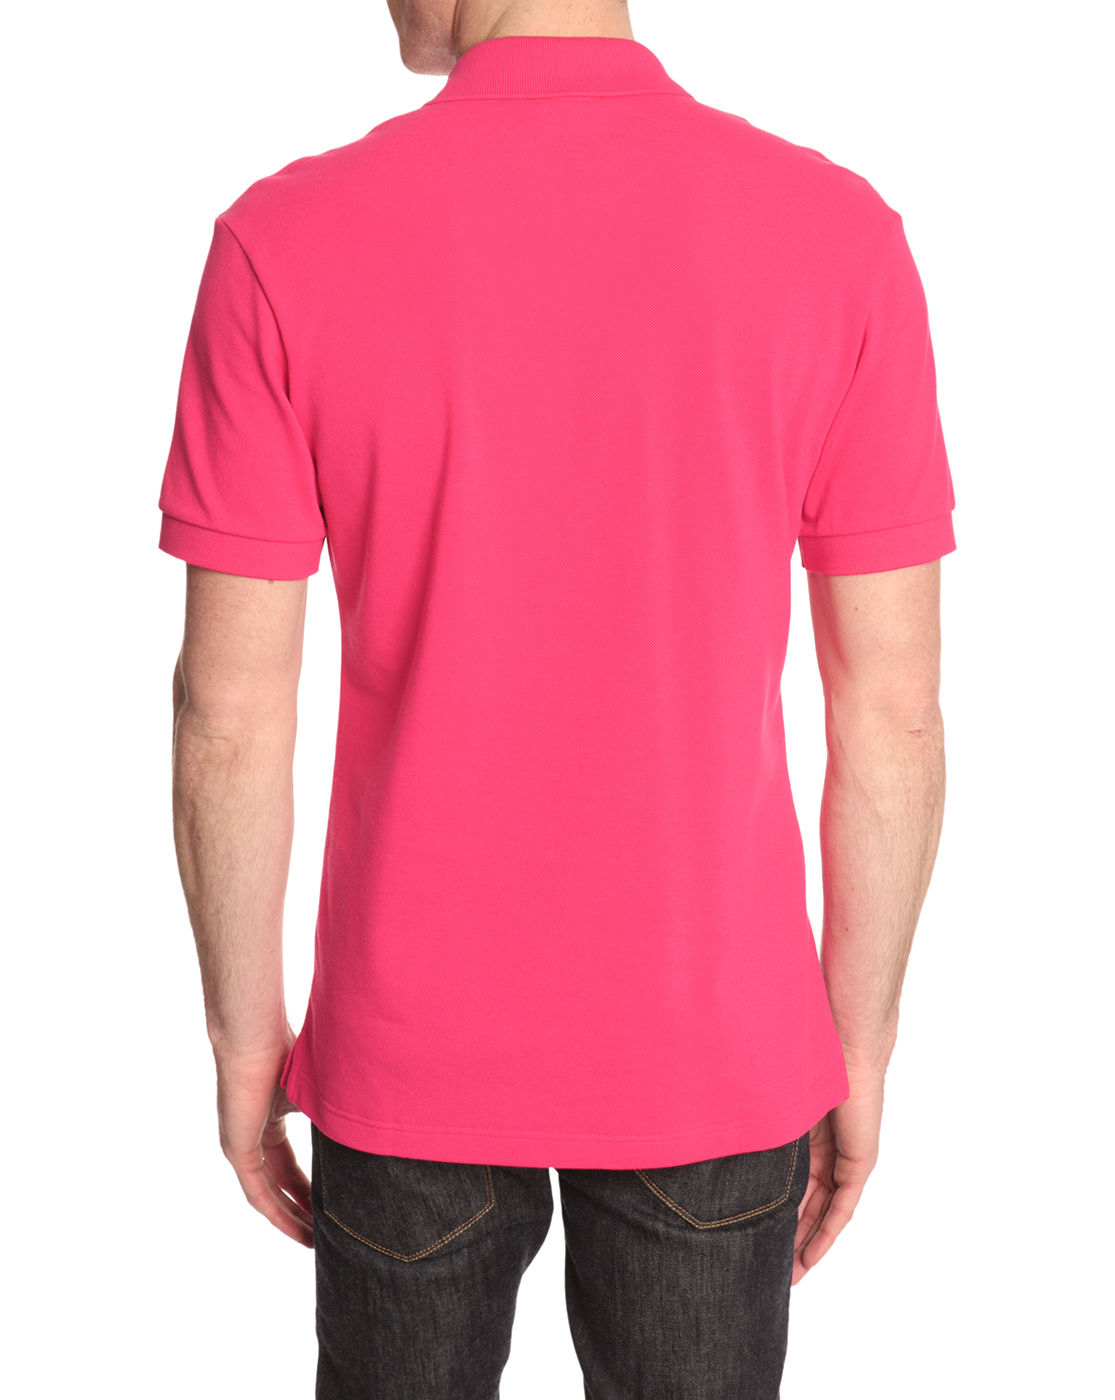 Lacoste Slim Fit Shortsleeved Pink Polo Shirt in Pink for ...